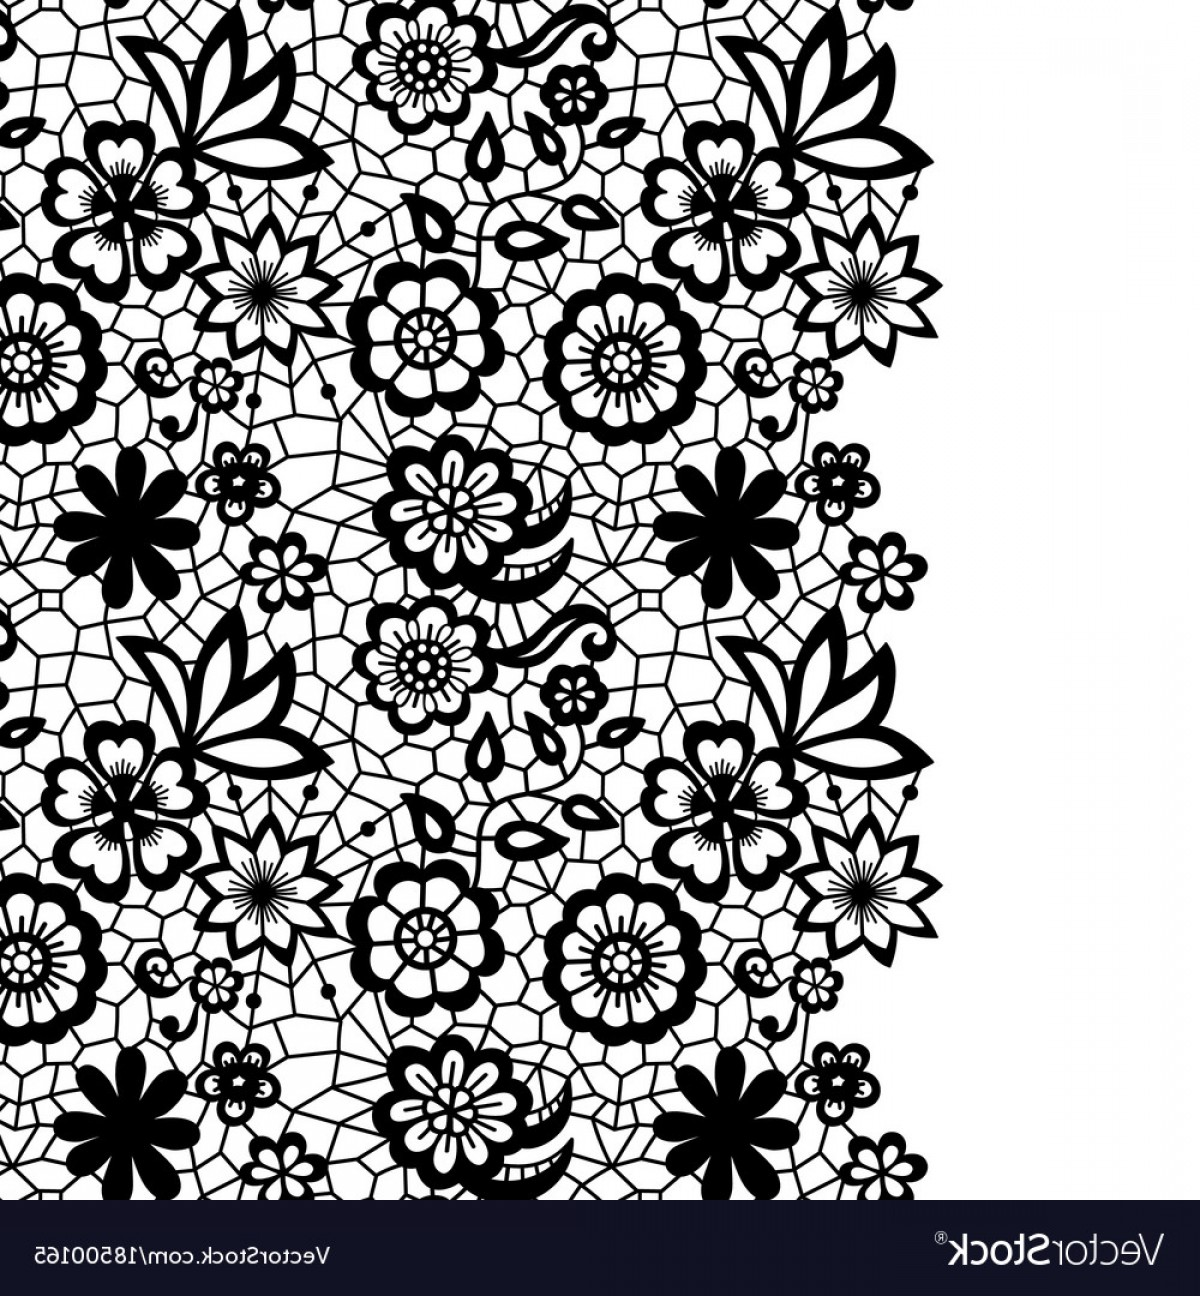 Floral Lace Trim Vector: Seamless Lace Border Invitation Card Vector